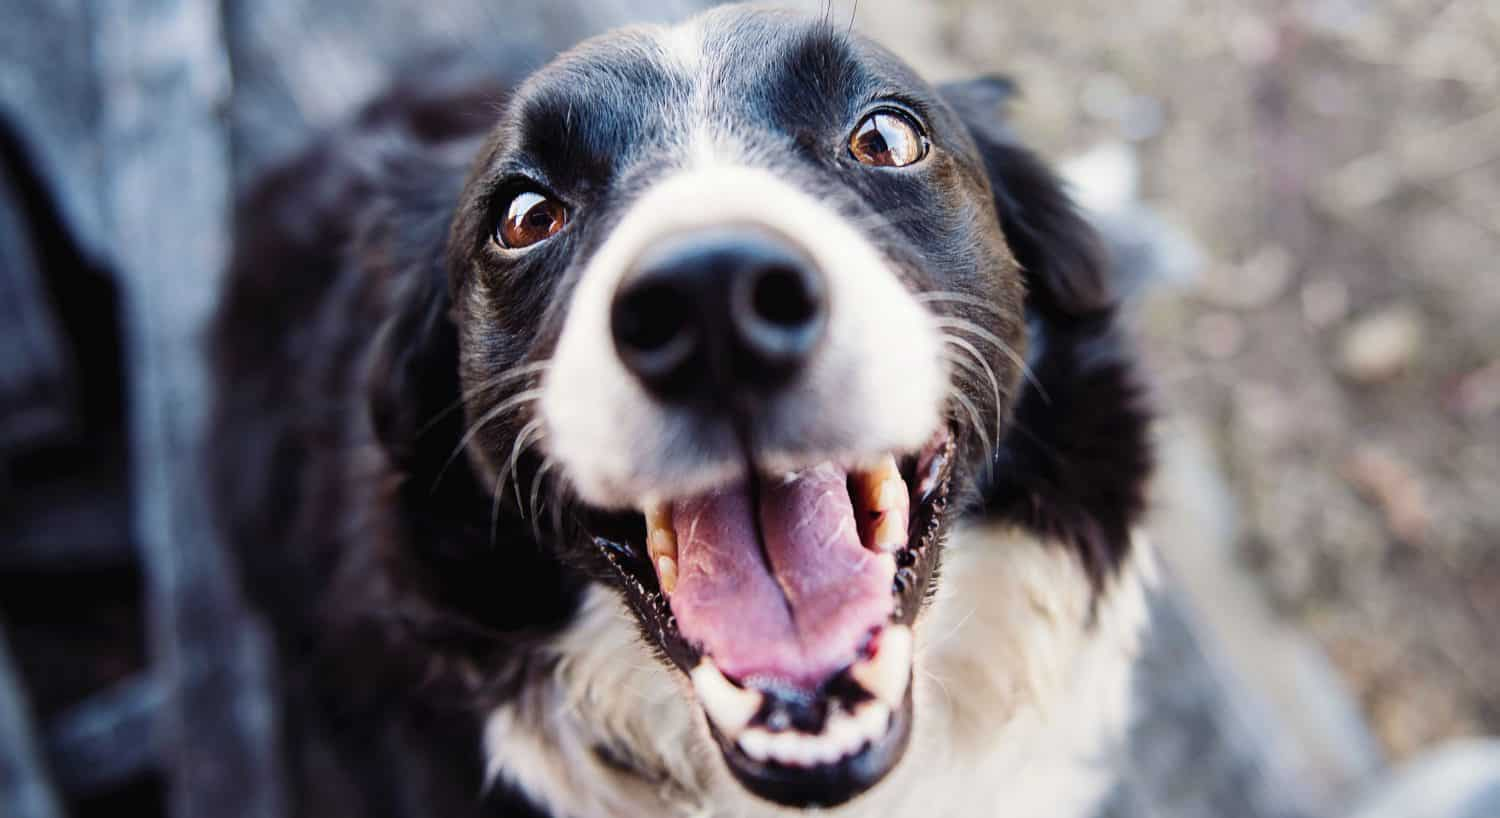 My dog has bad breath. What is the cause and treatment?